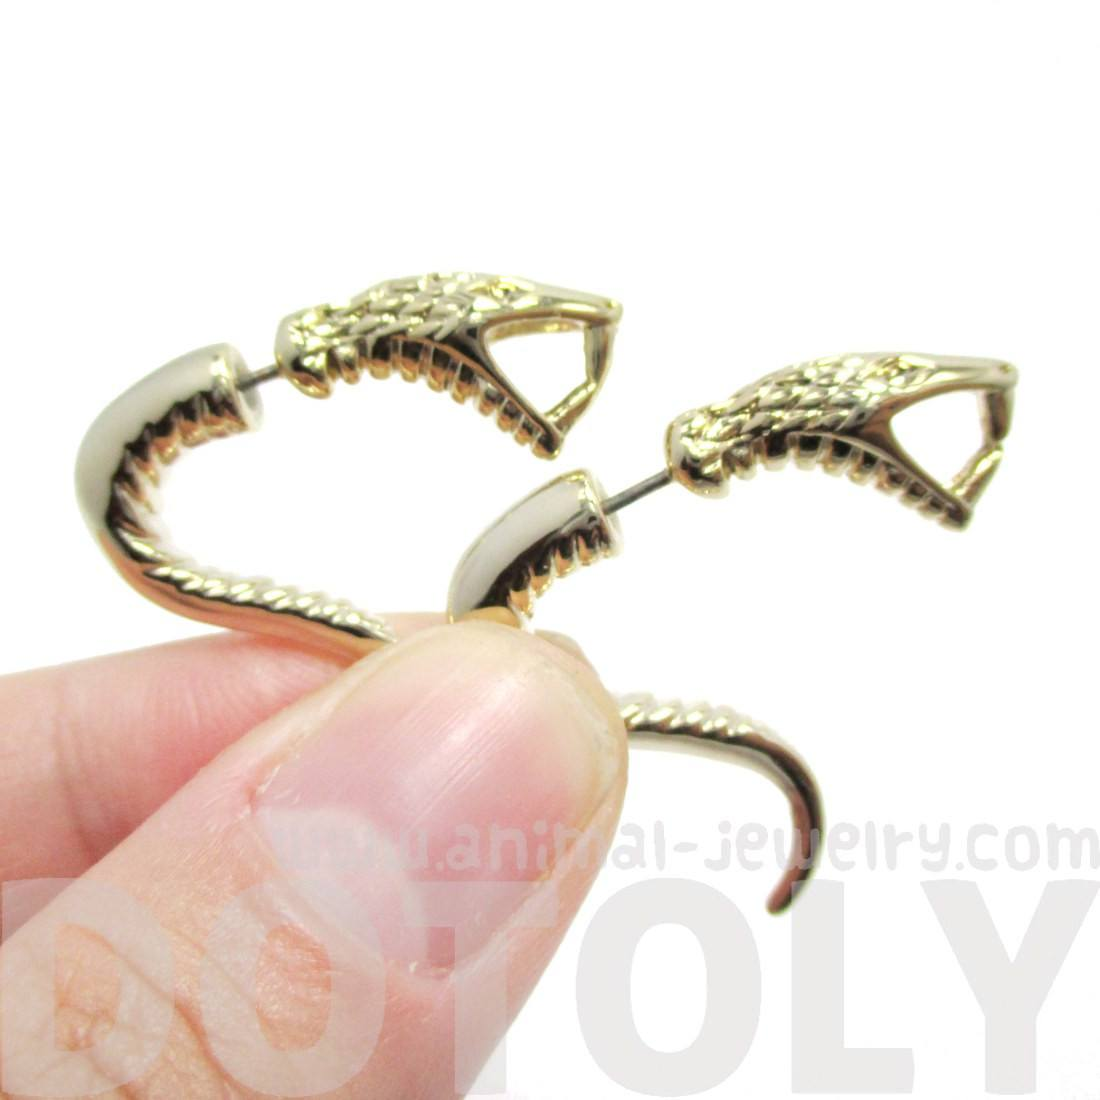 Cobra Snake Shaped Front and Back Stud Earrings in Gold